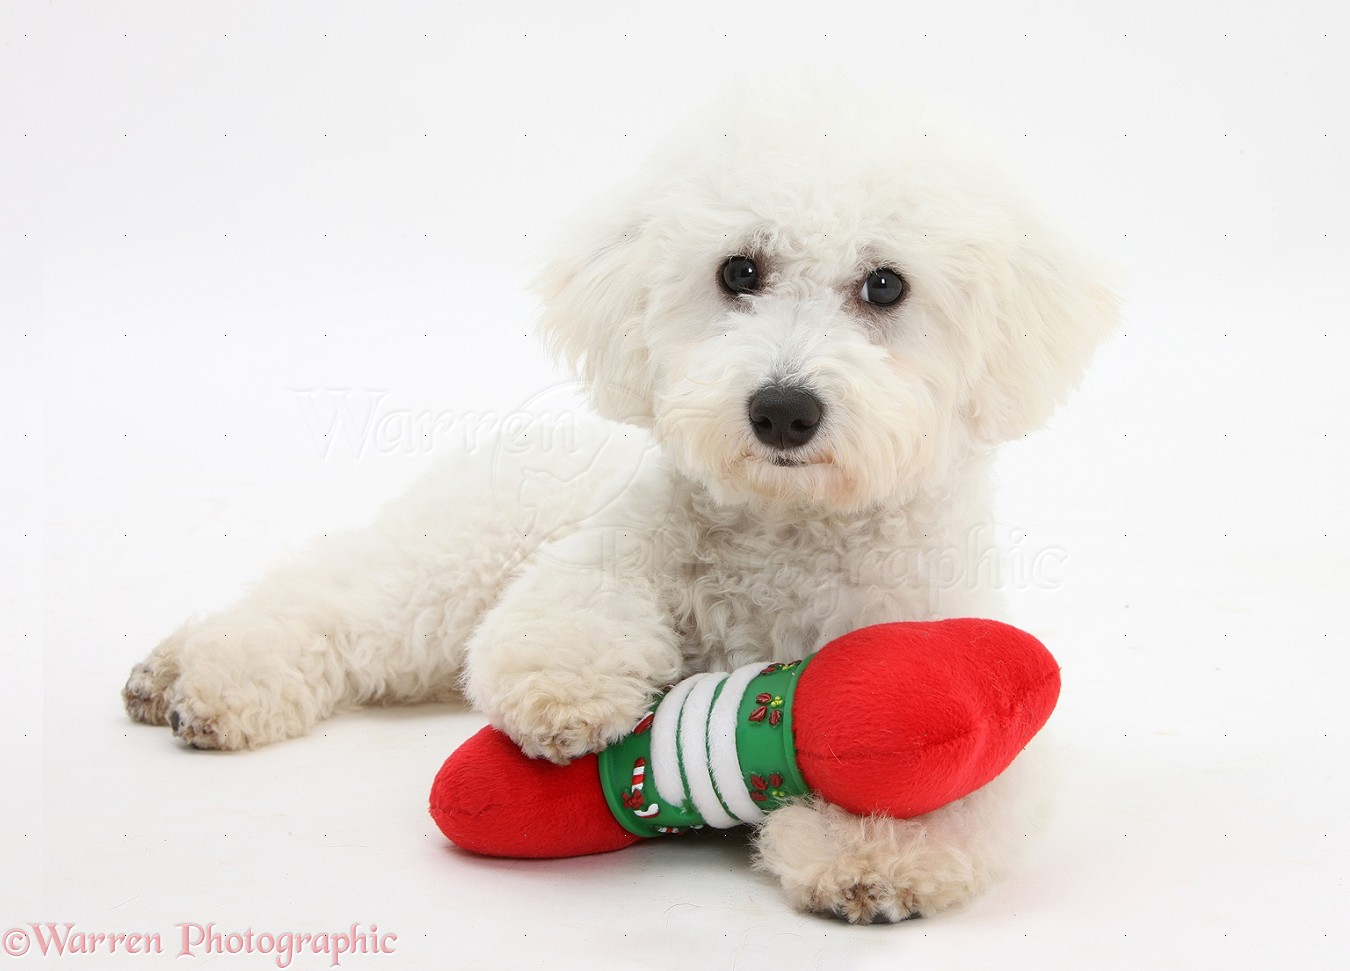 Frisé dog louie 5 months old with a soft toy christmas bone